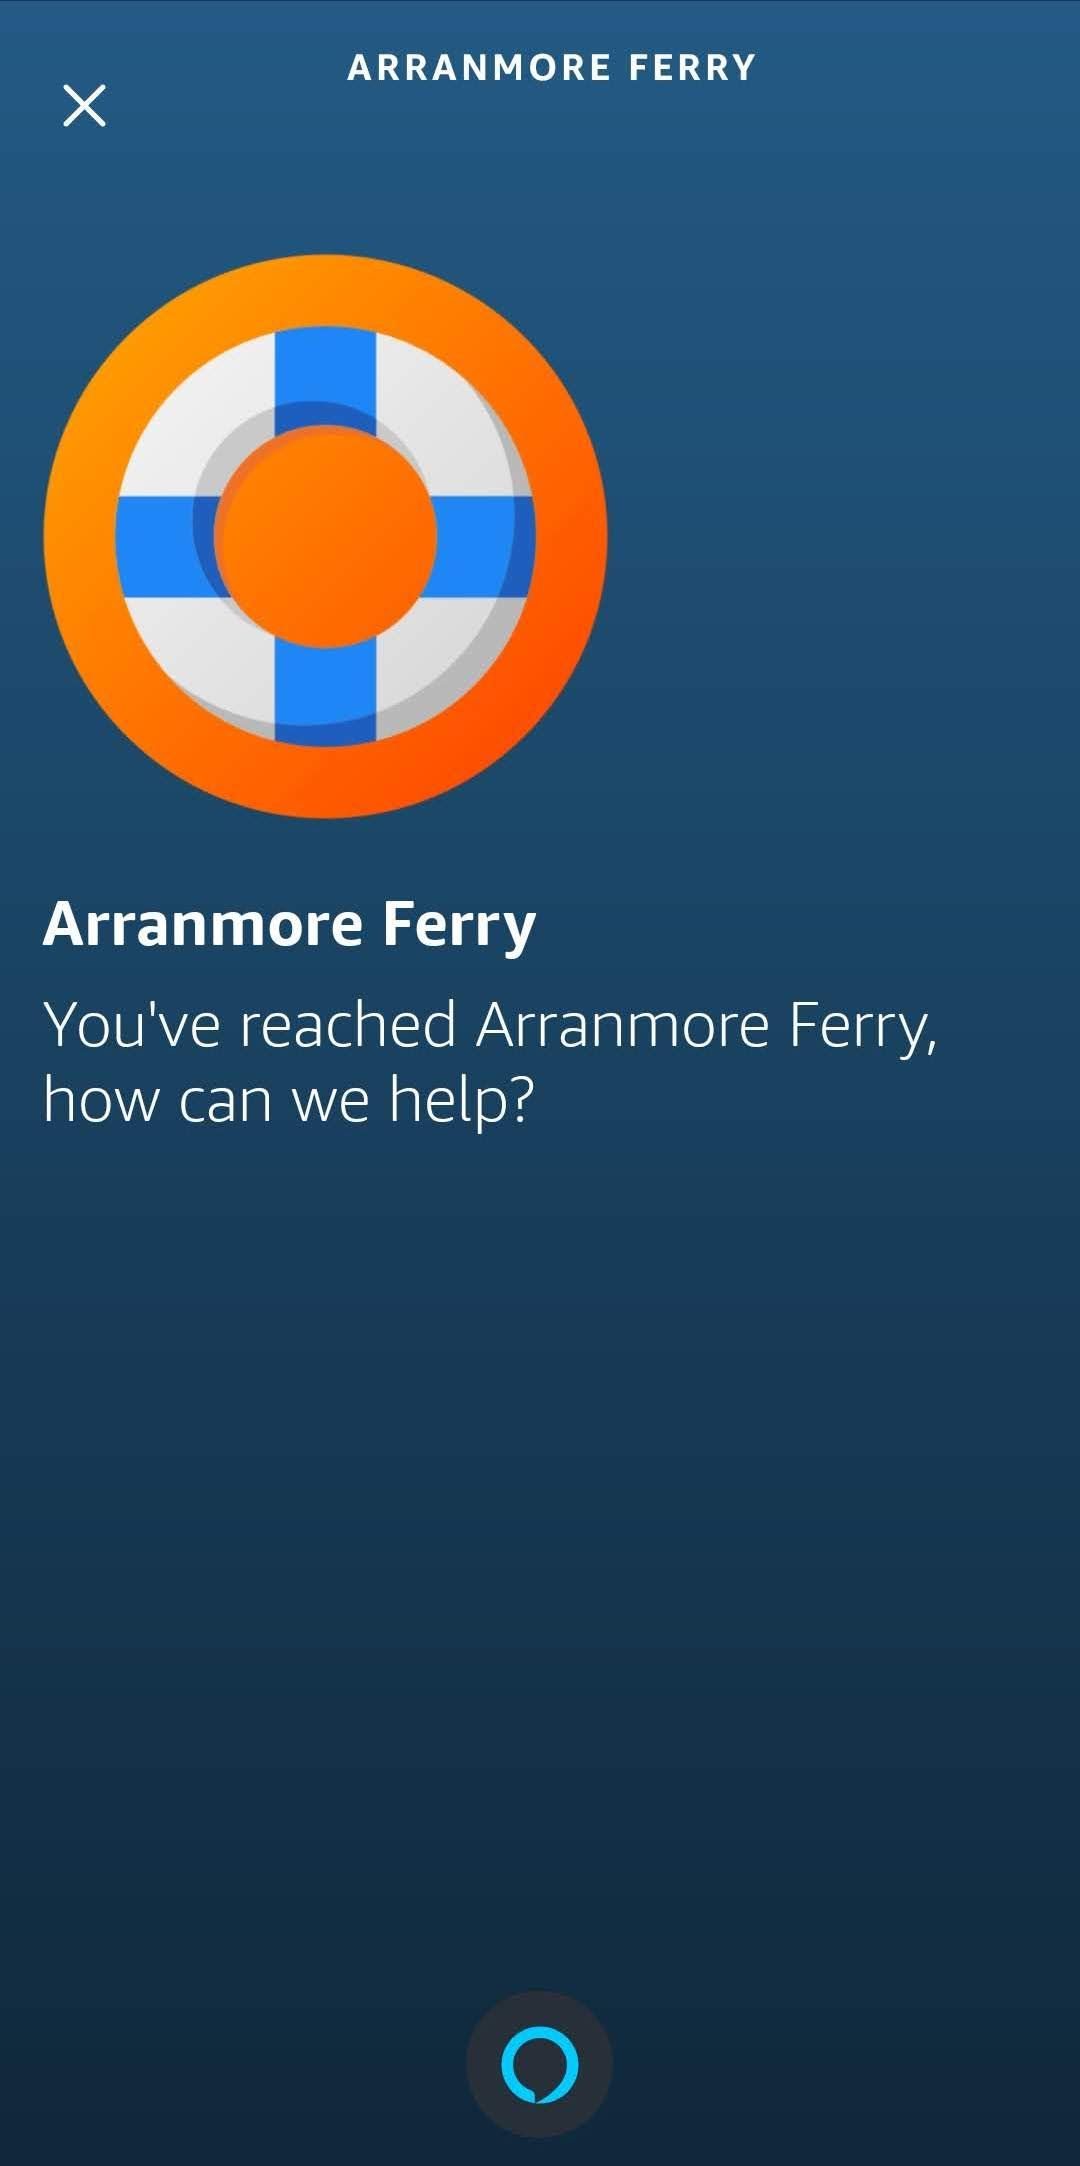 Mobile App with Arranmore Ferry